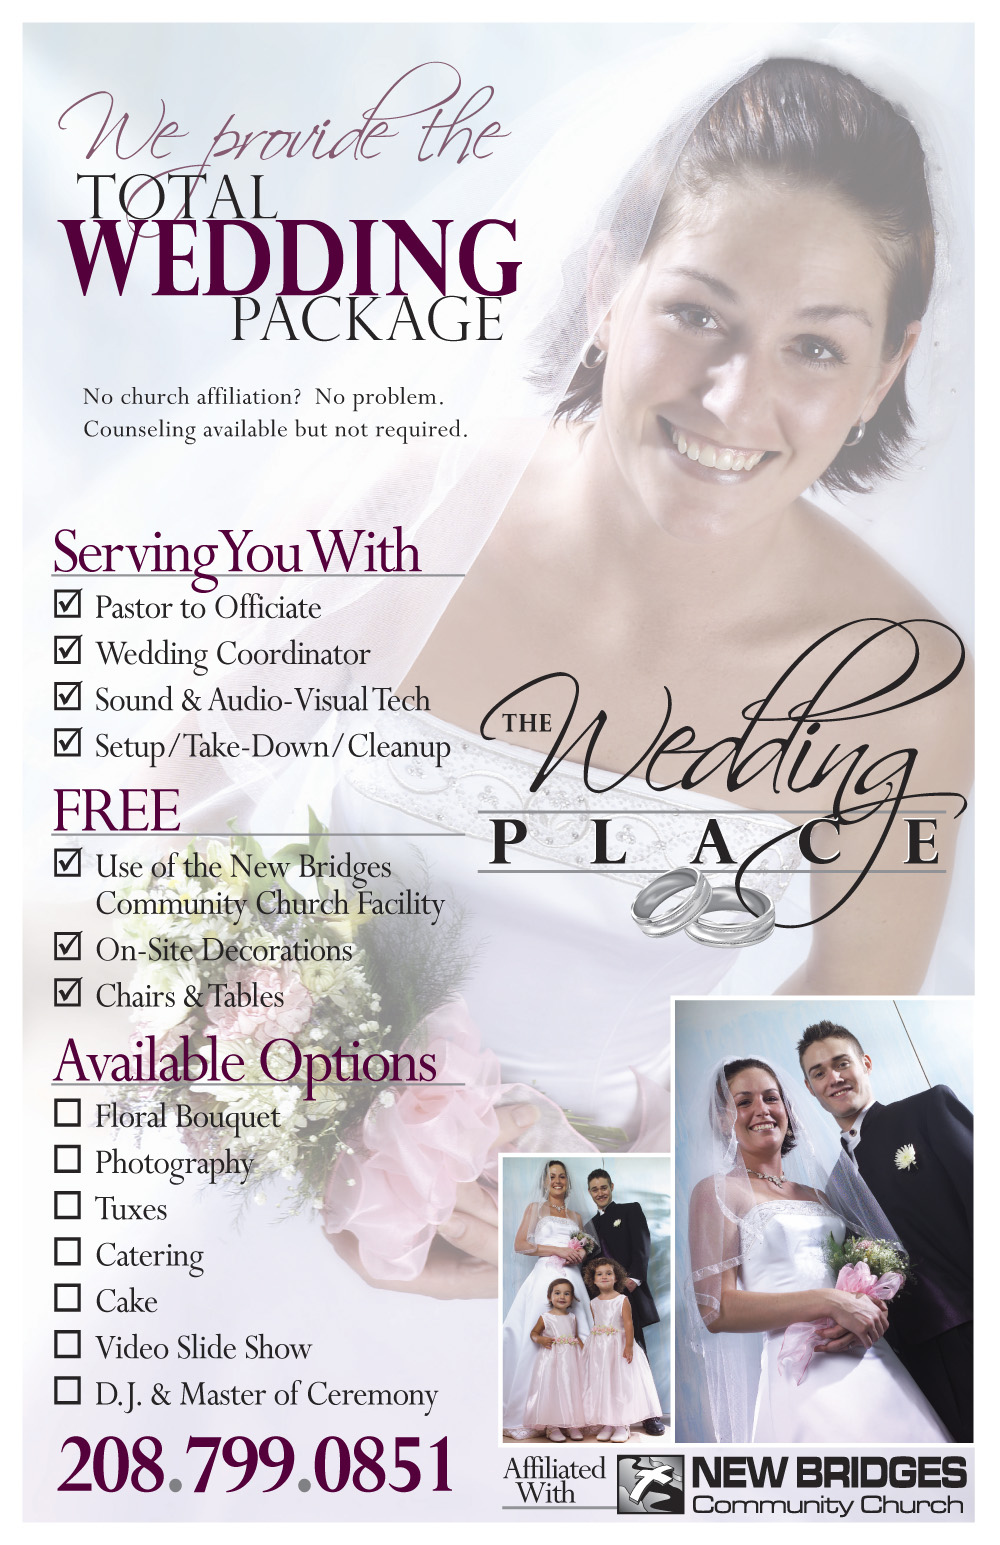 31451-6_TheWeddingPlace_11x17Poster.jpg